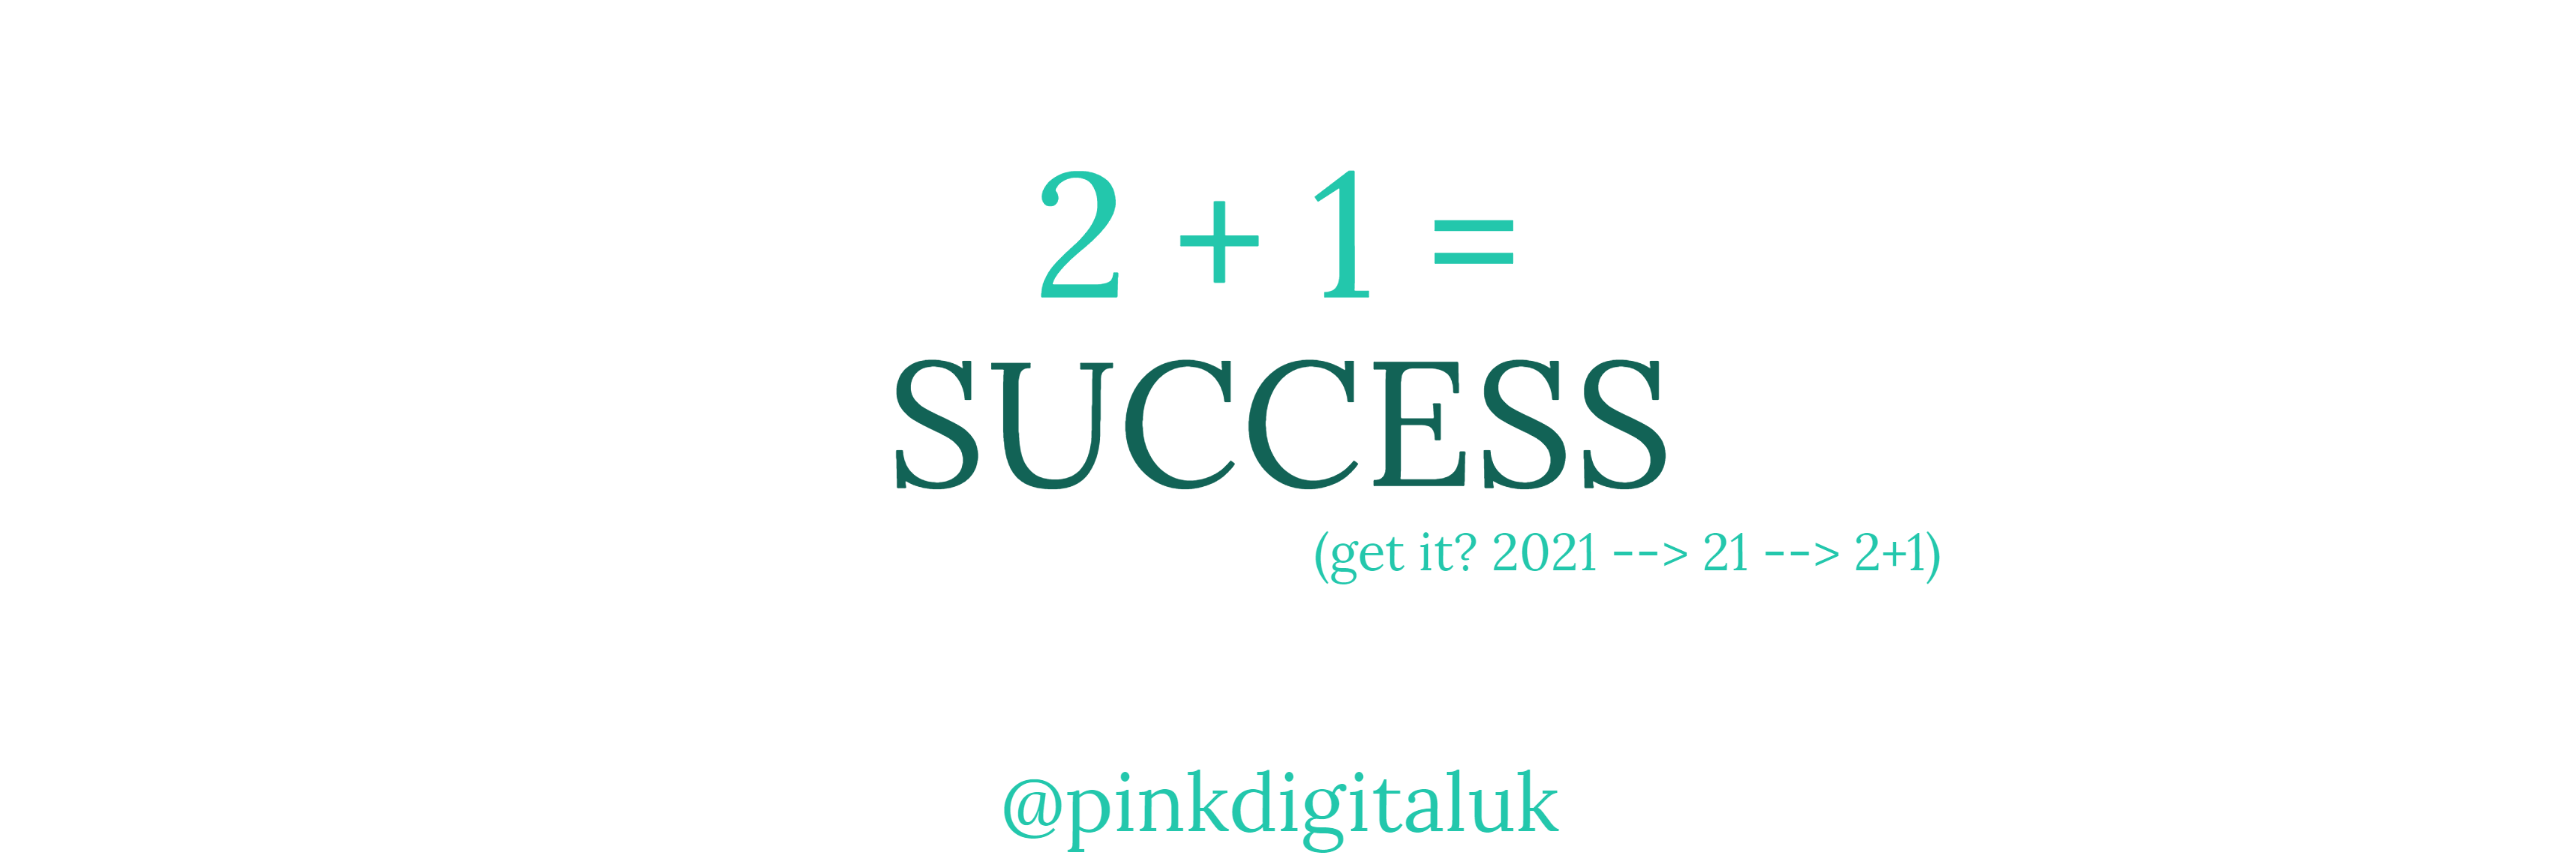 Two things to ensure success in 2021